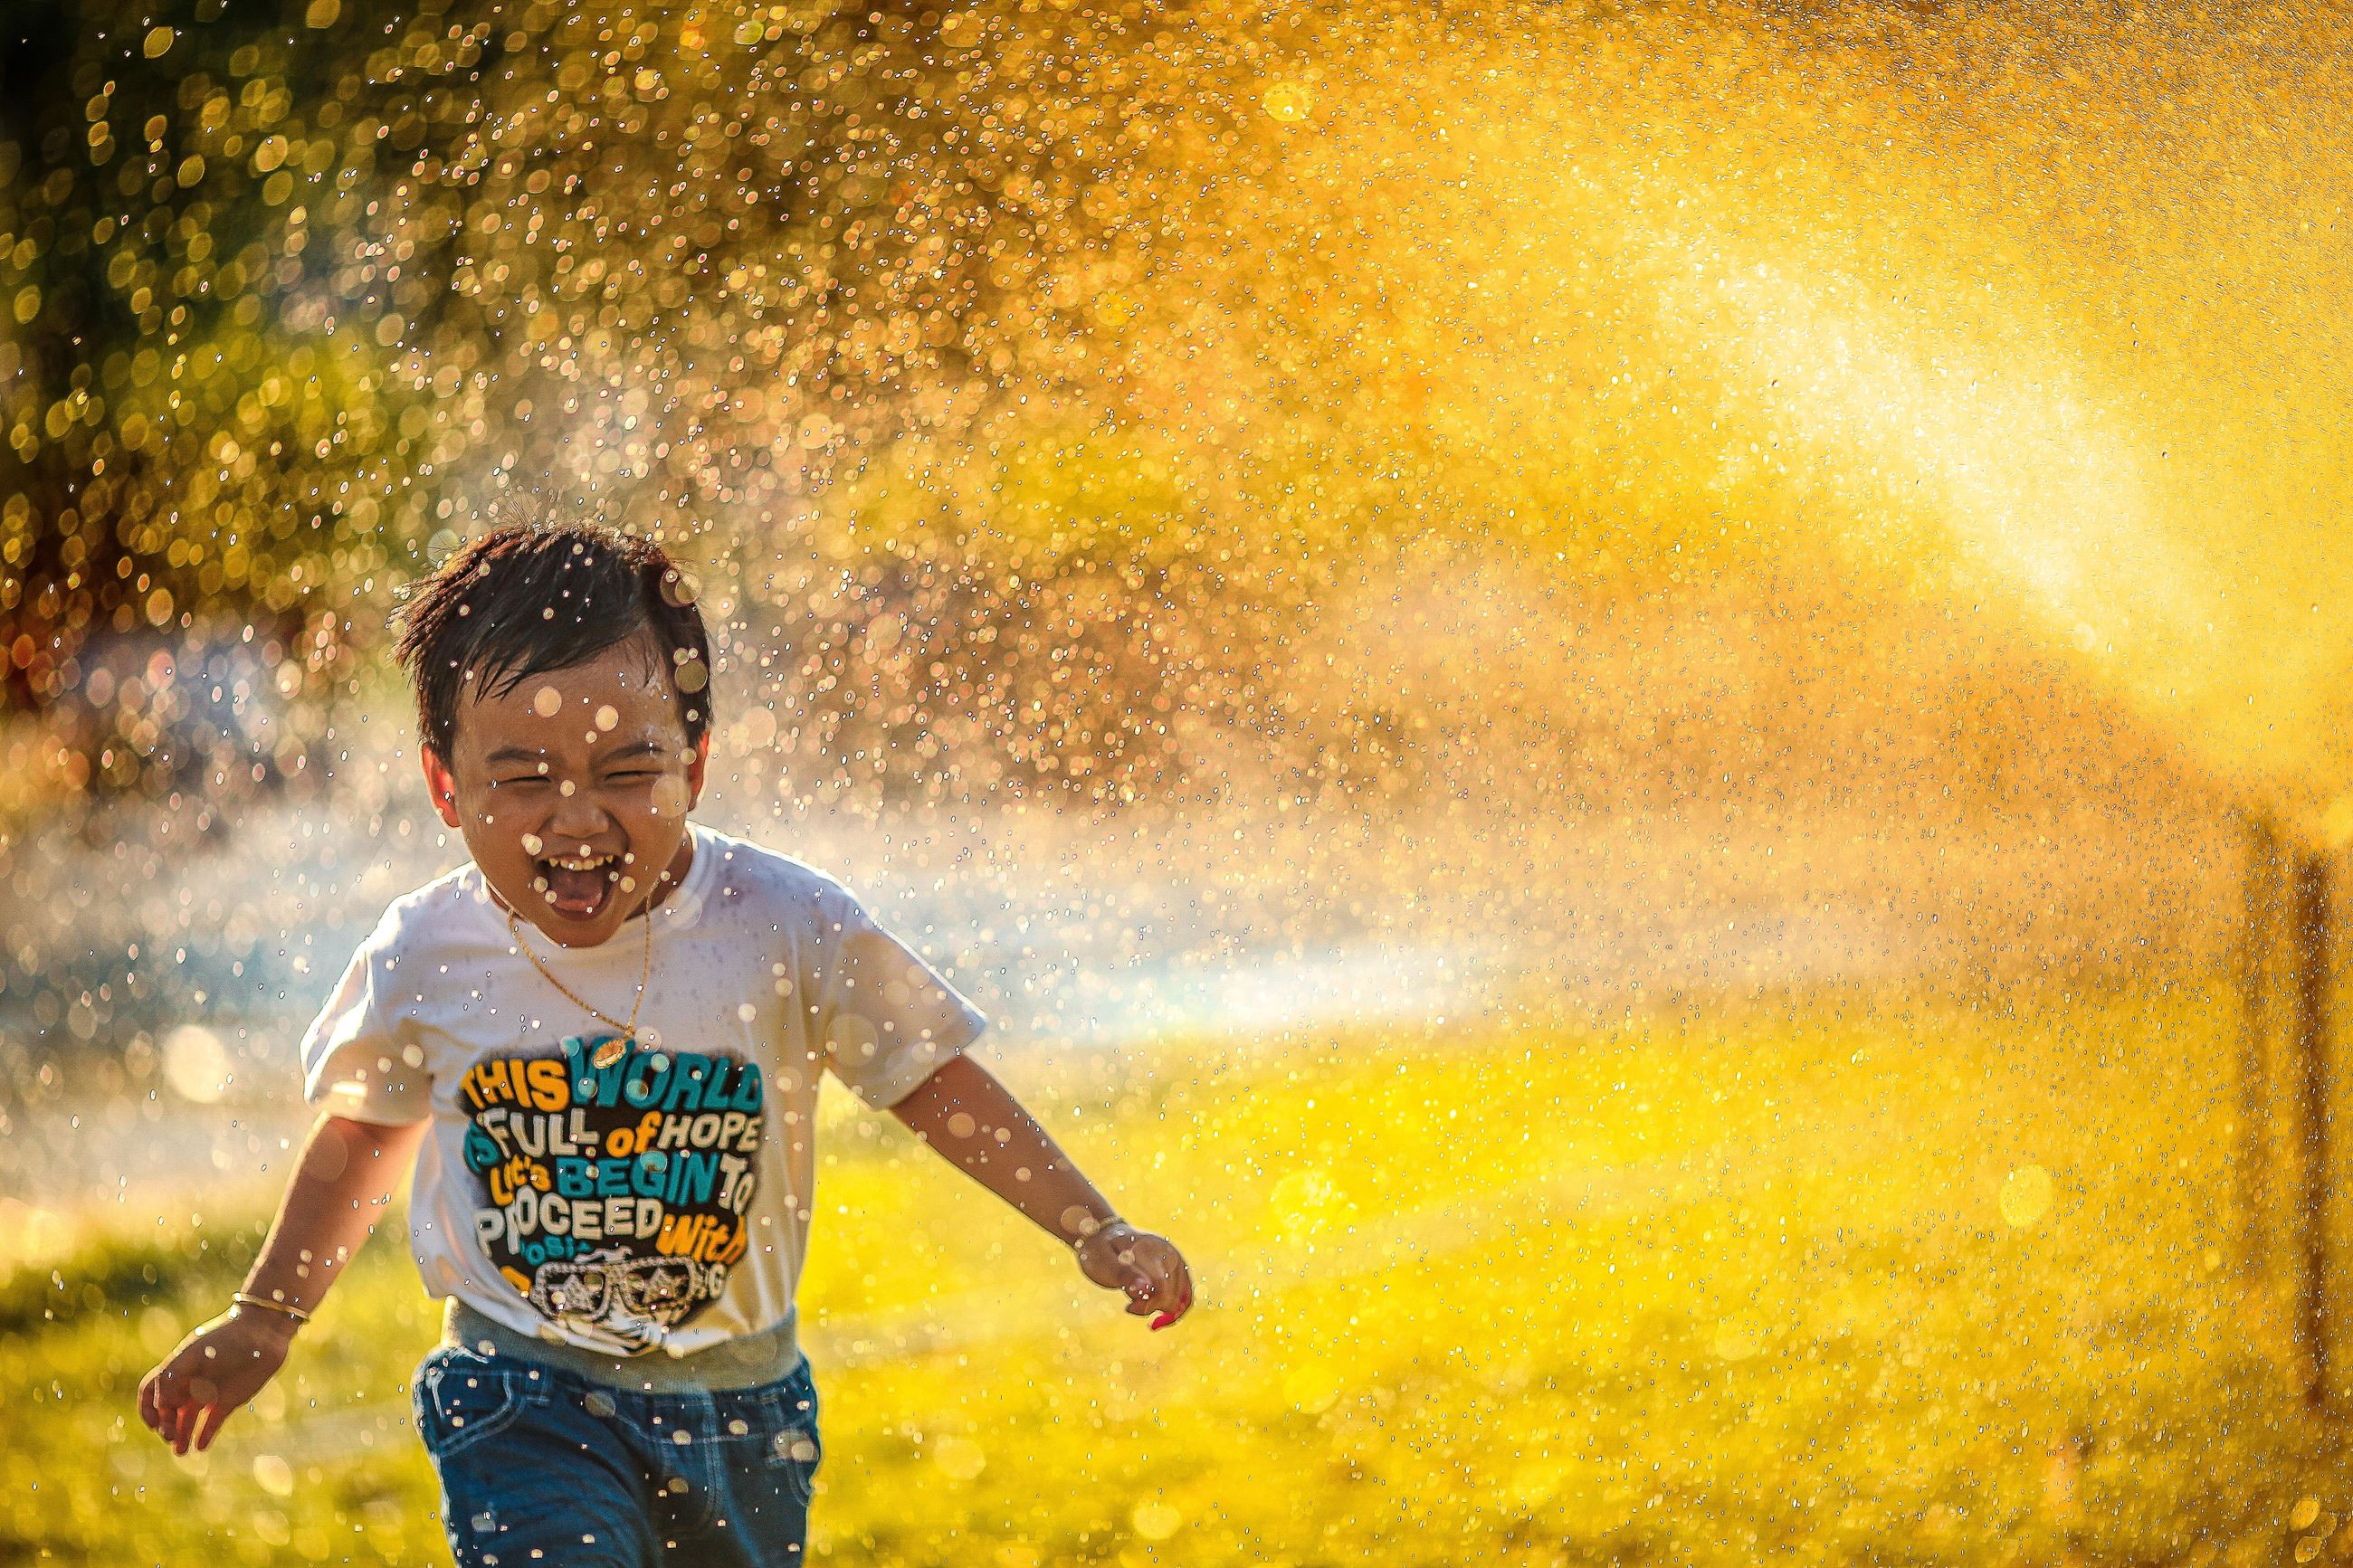 Kid in Sprinkler